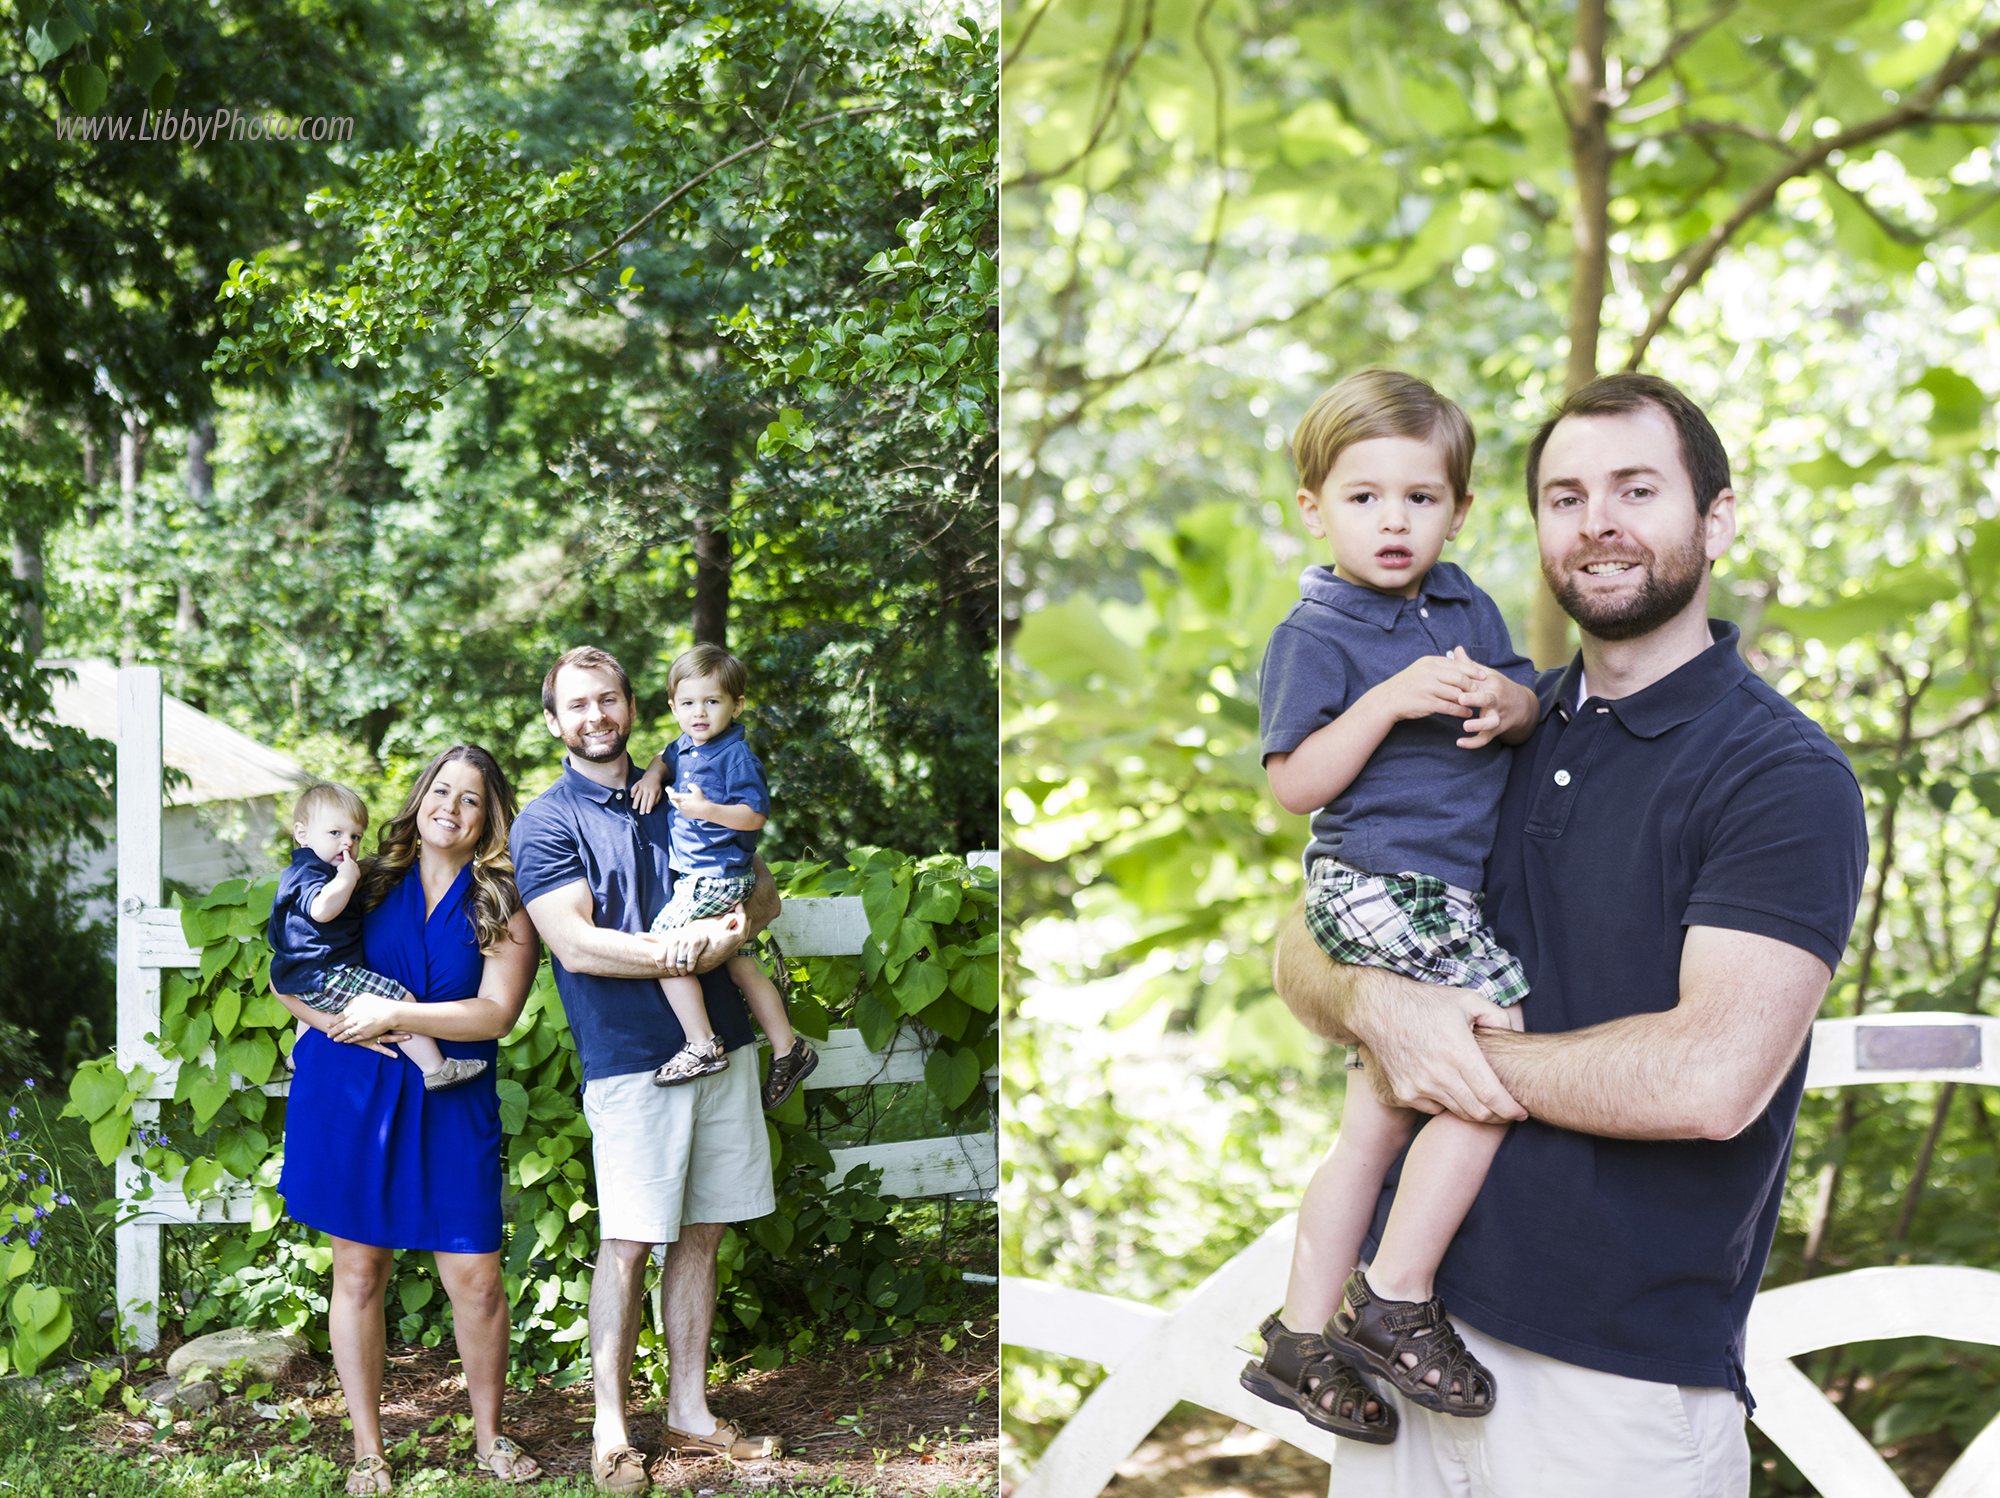 Atlanta family photography Libbyphoto (26).jpg